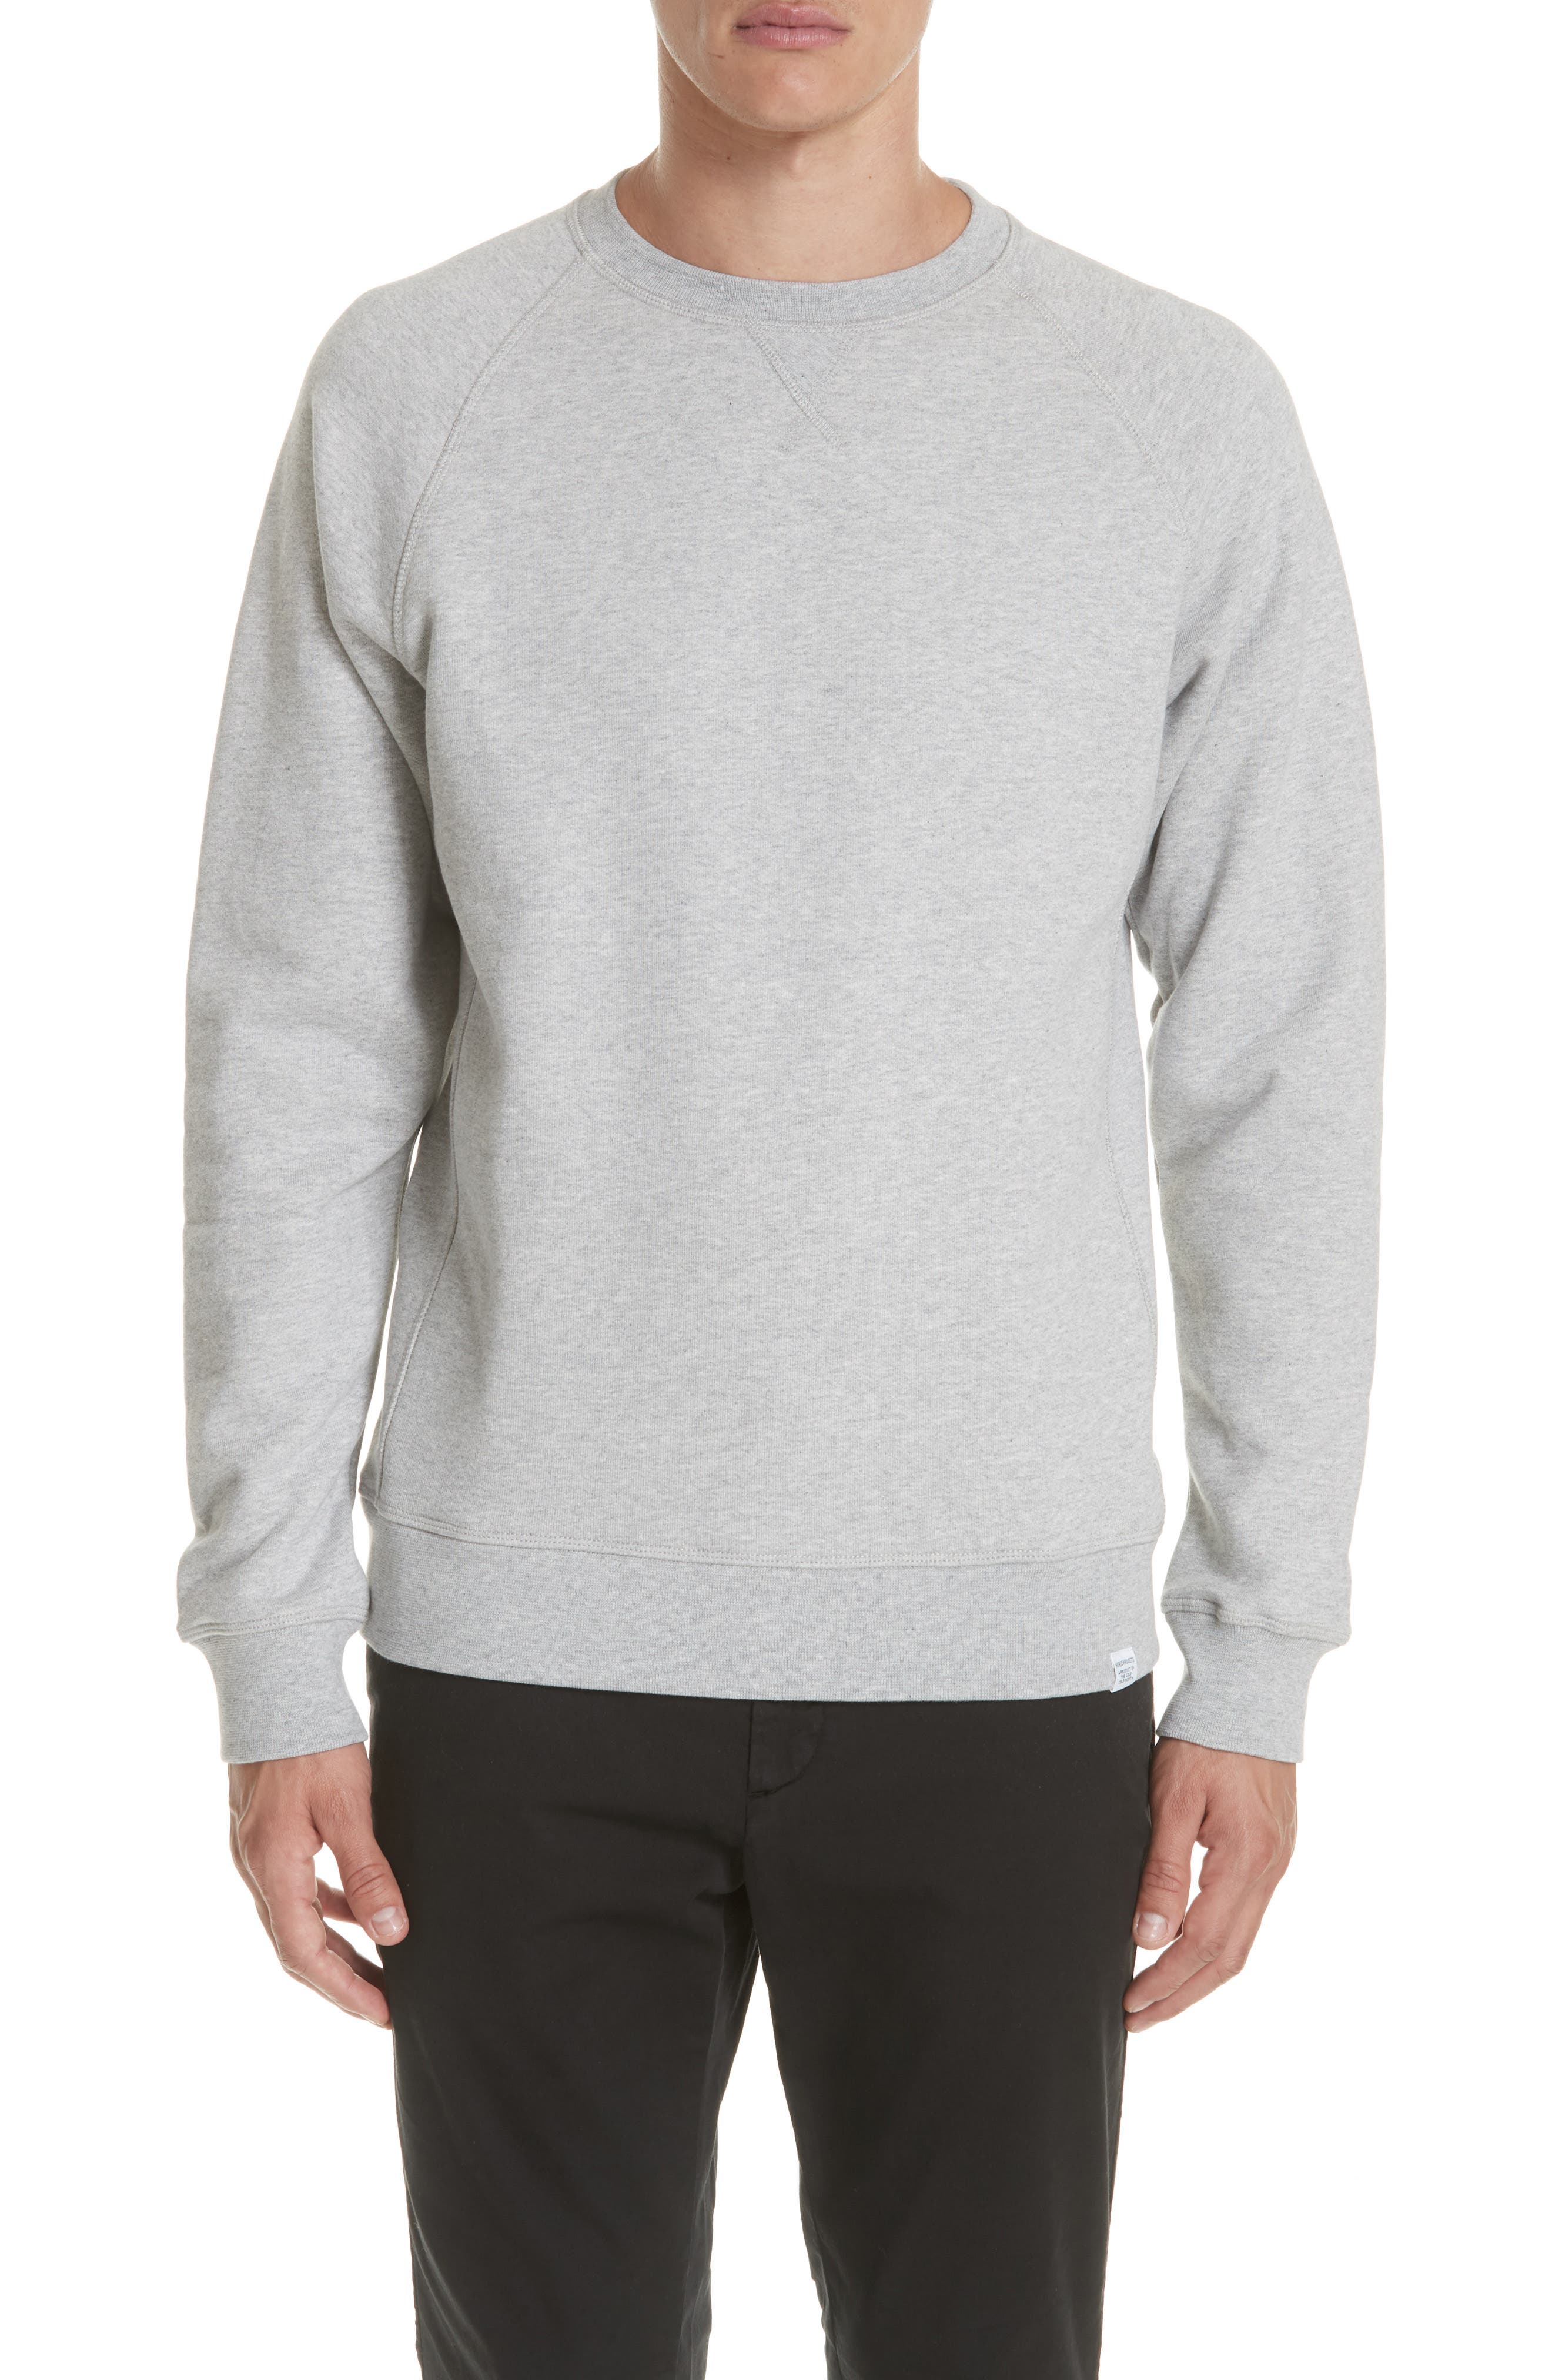 Ketel Crewneck Sweatshirt,                         Main,                         color, 050